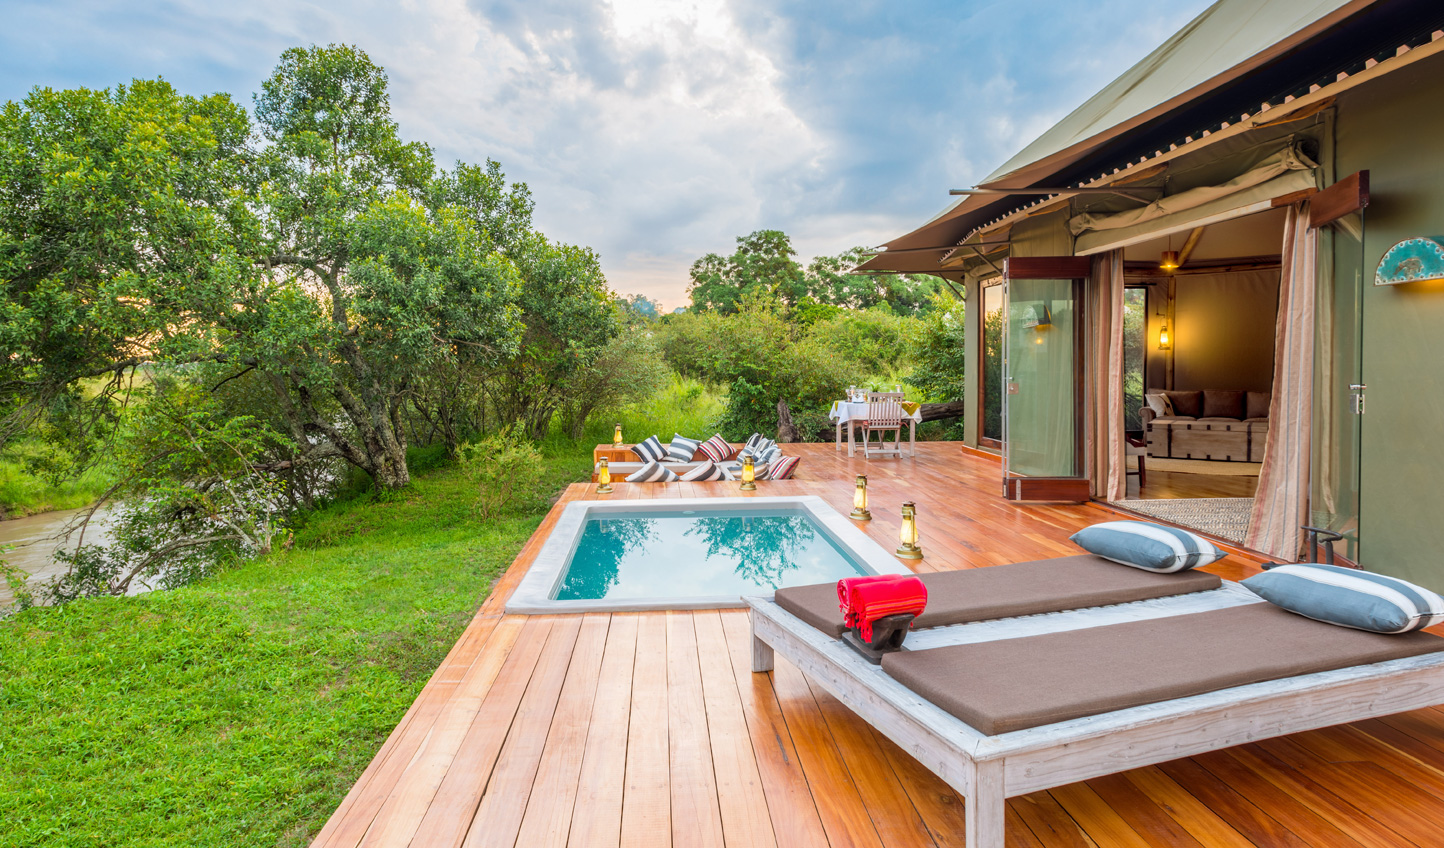 Catch sight of river crossings from the comfort of your private plunge pool